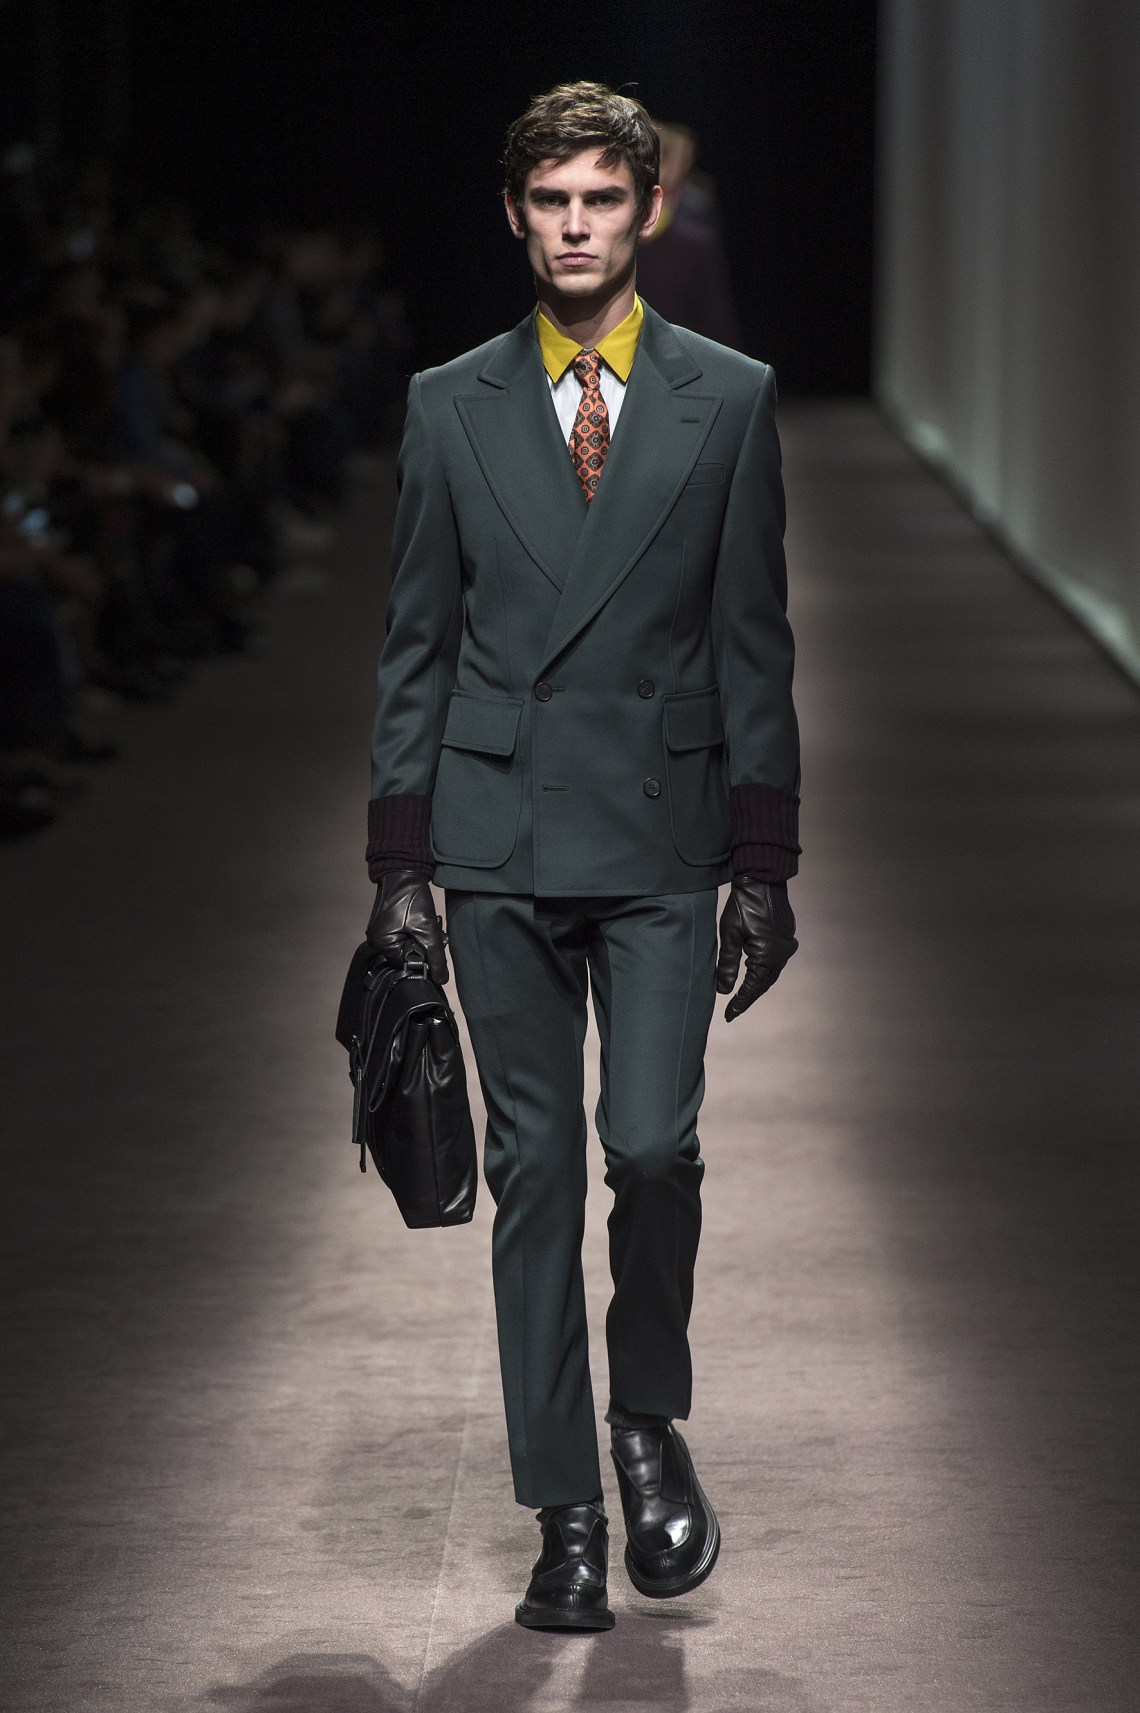 CANALI - Fall Winter 2016/17